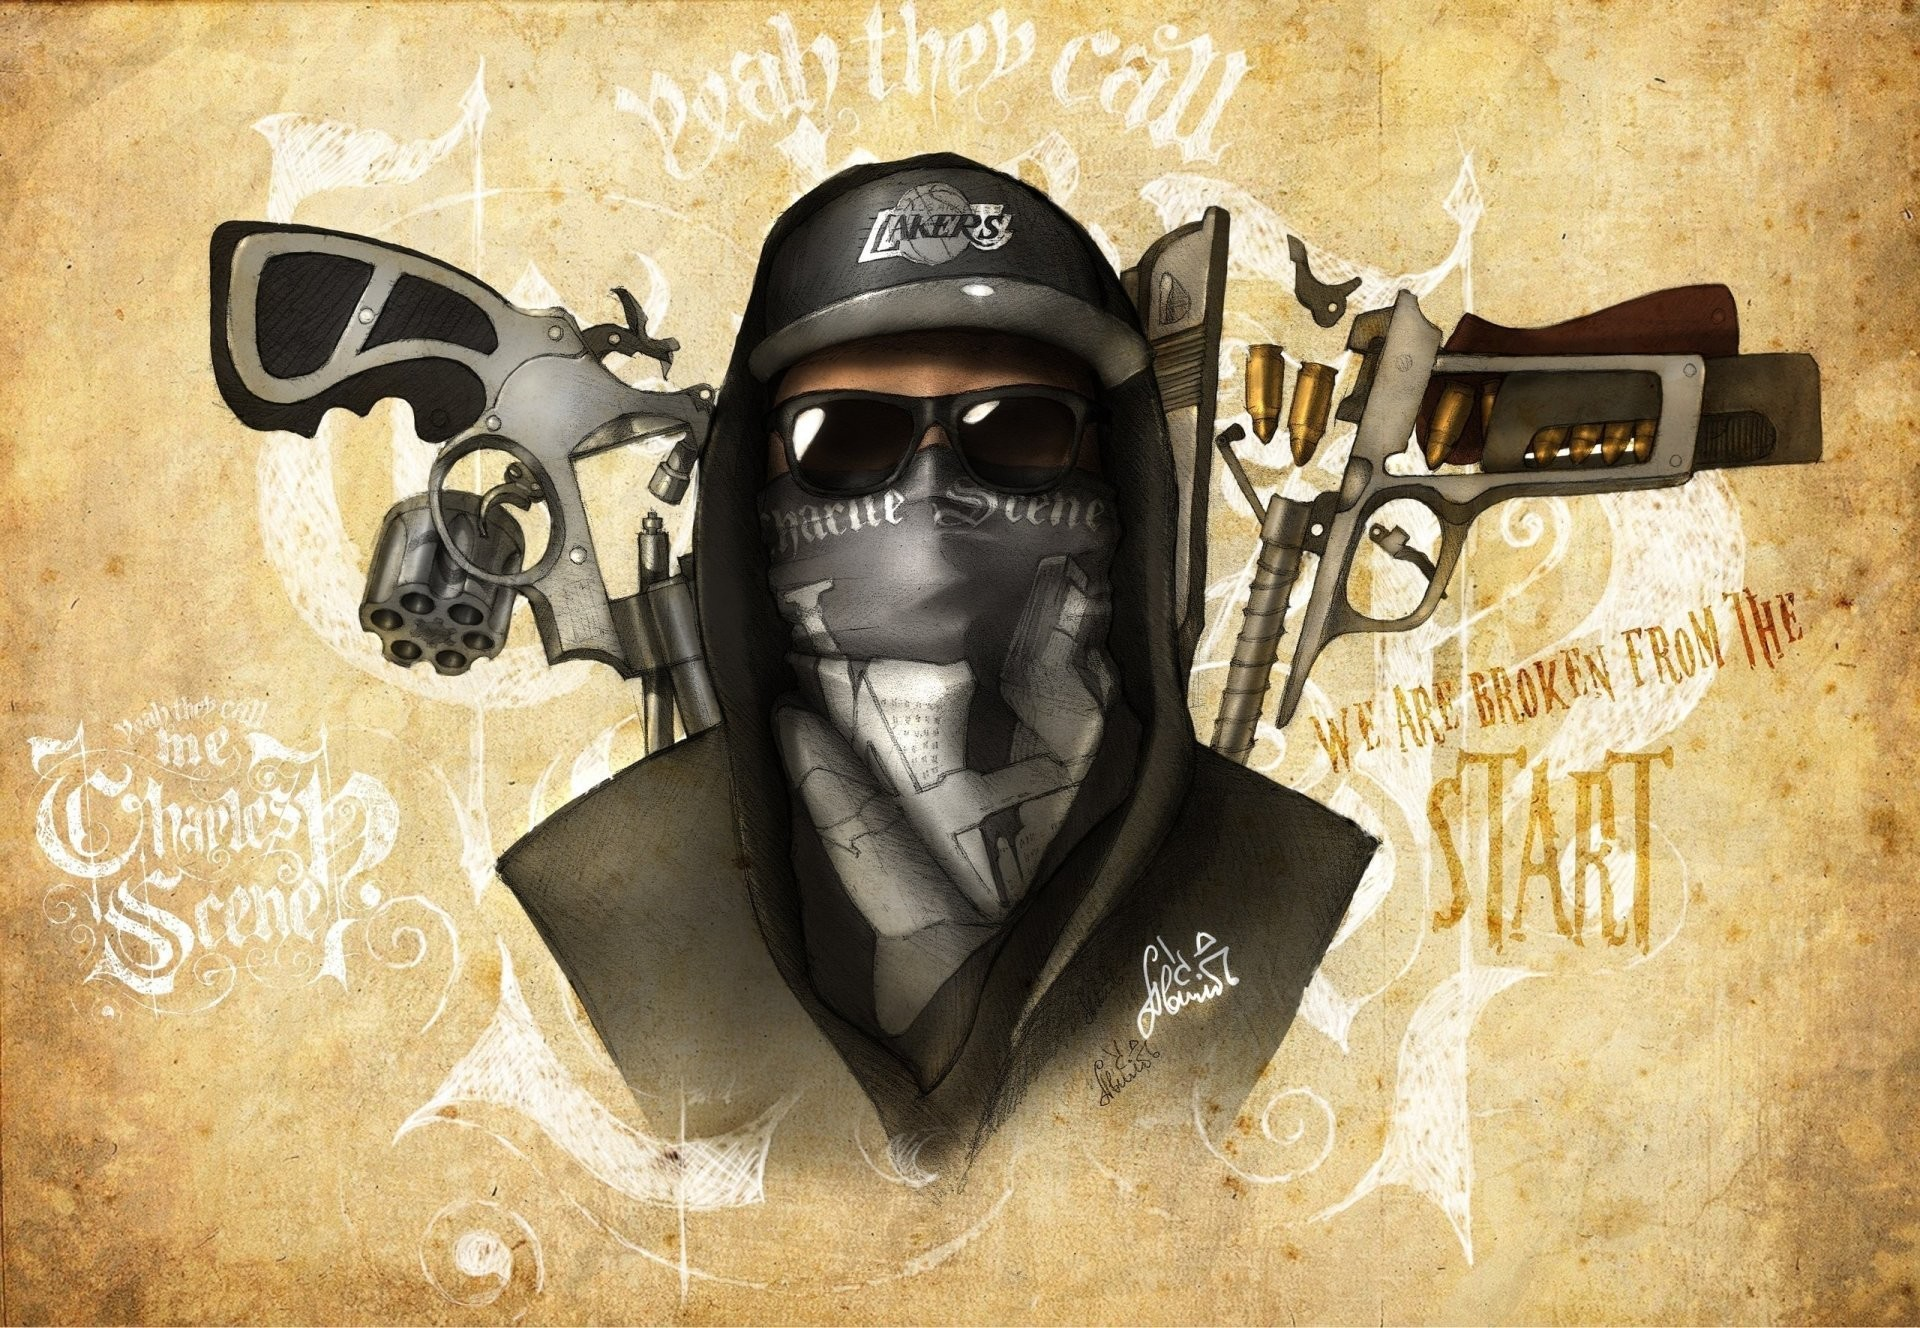 1920x1328 Hollywood undead Mask HD Wallpaper 17608